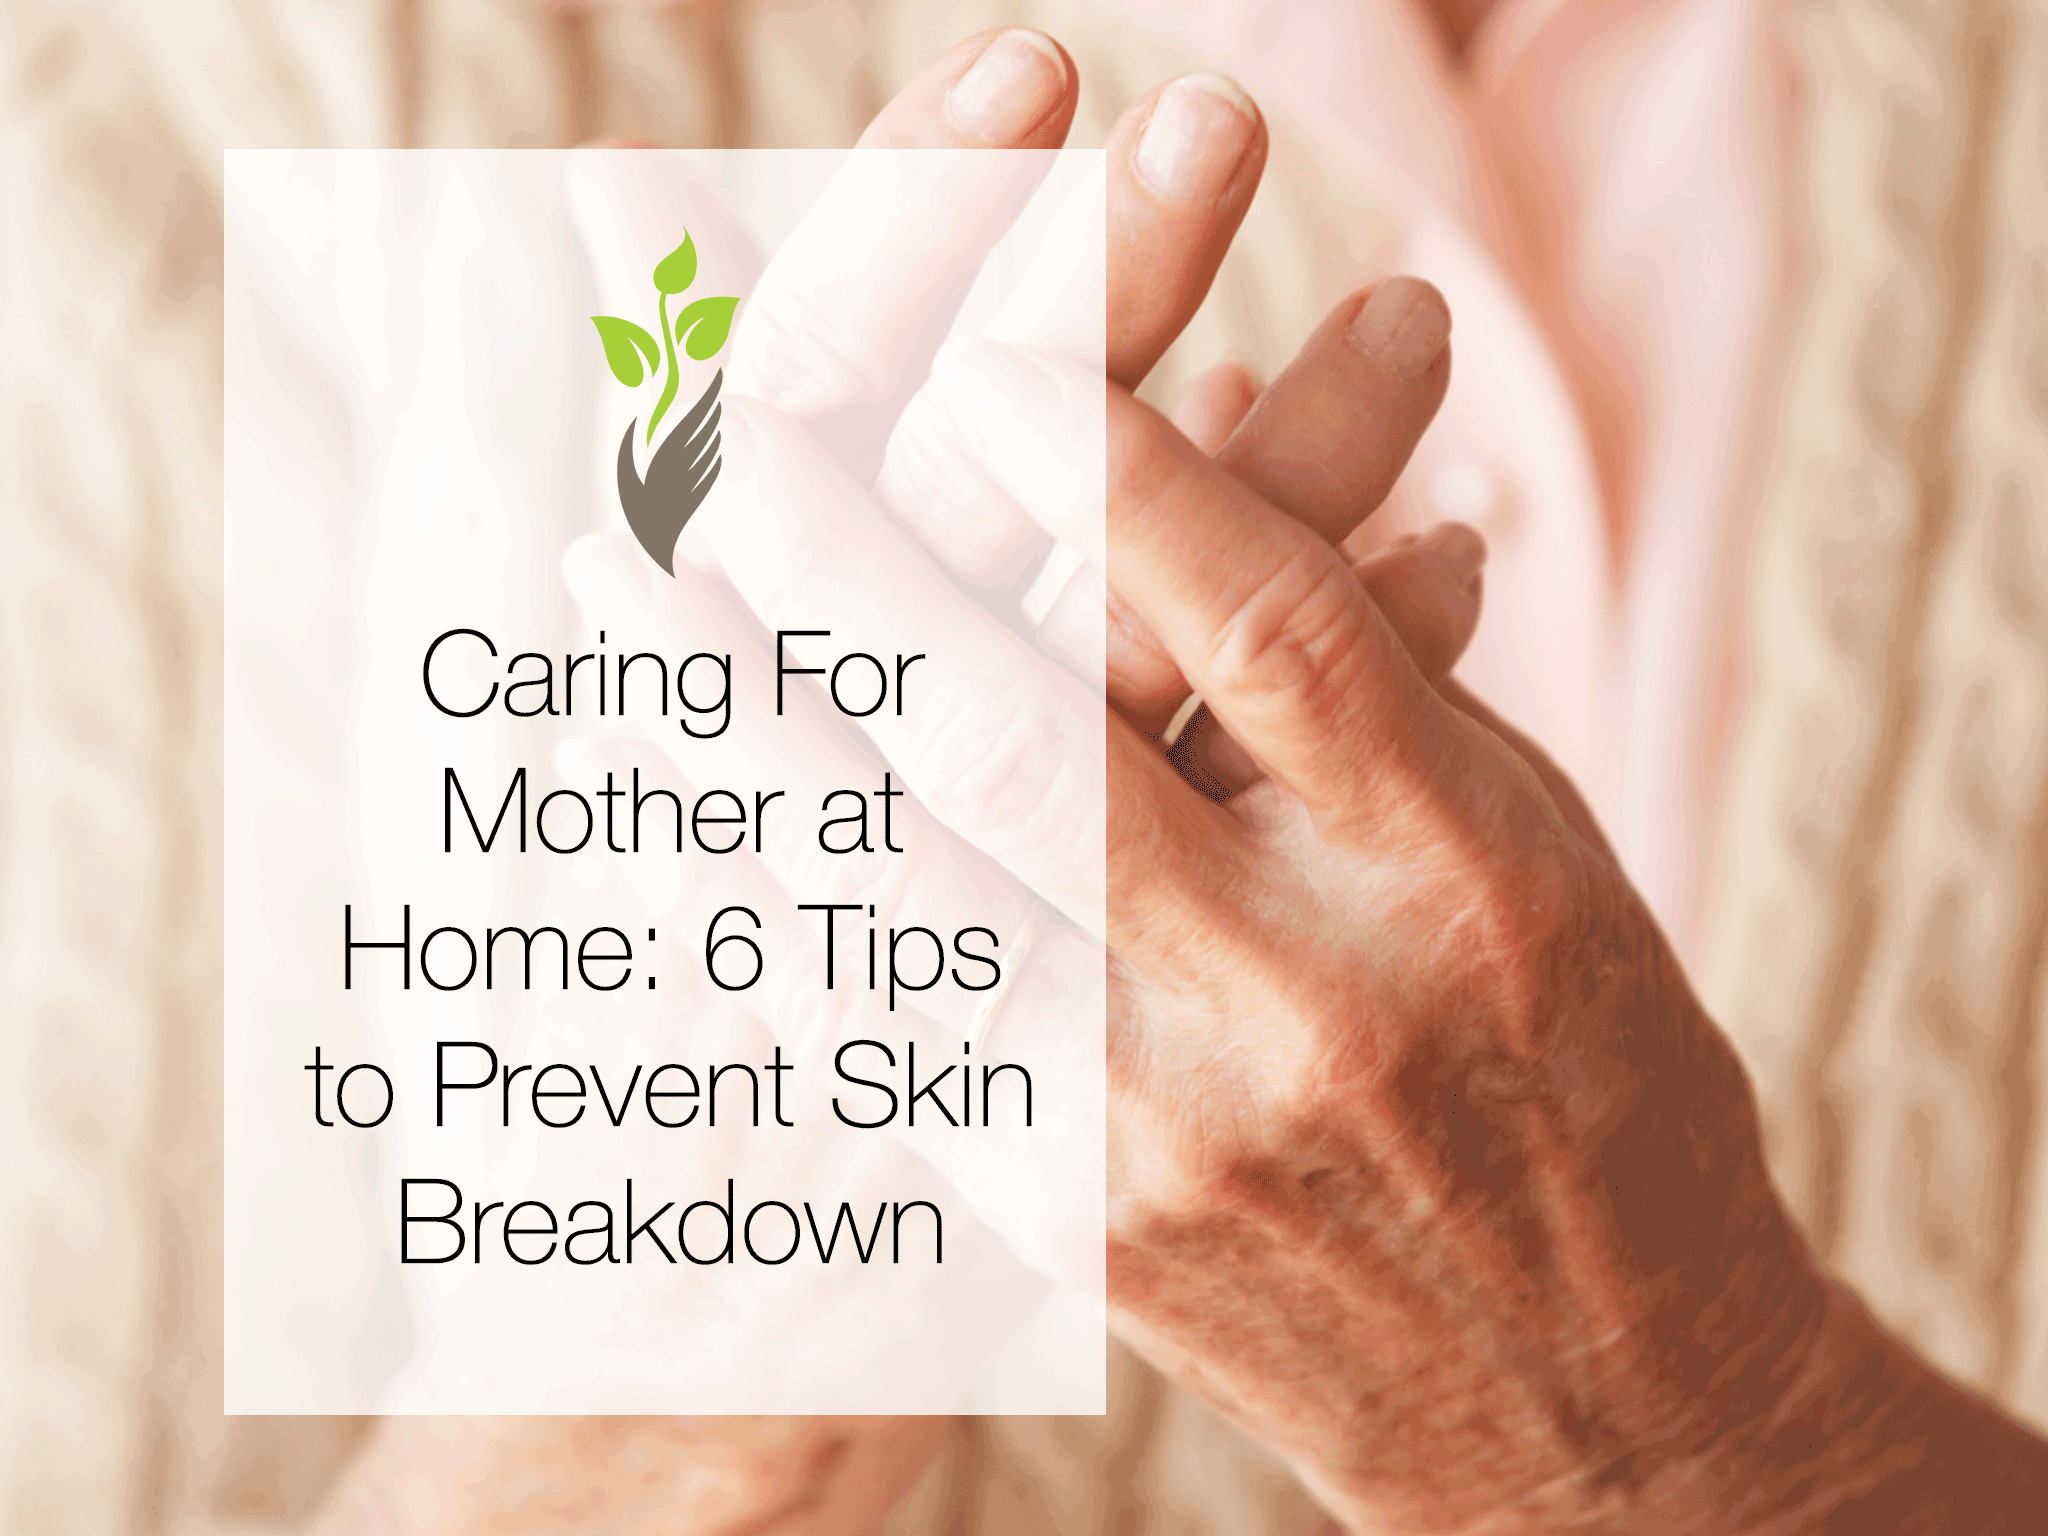 Caring For Mother at Home: 6 Tips to Prevent Skin Breakdown